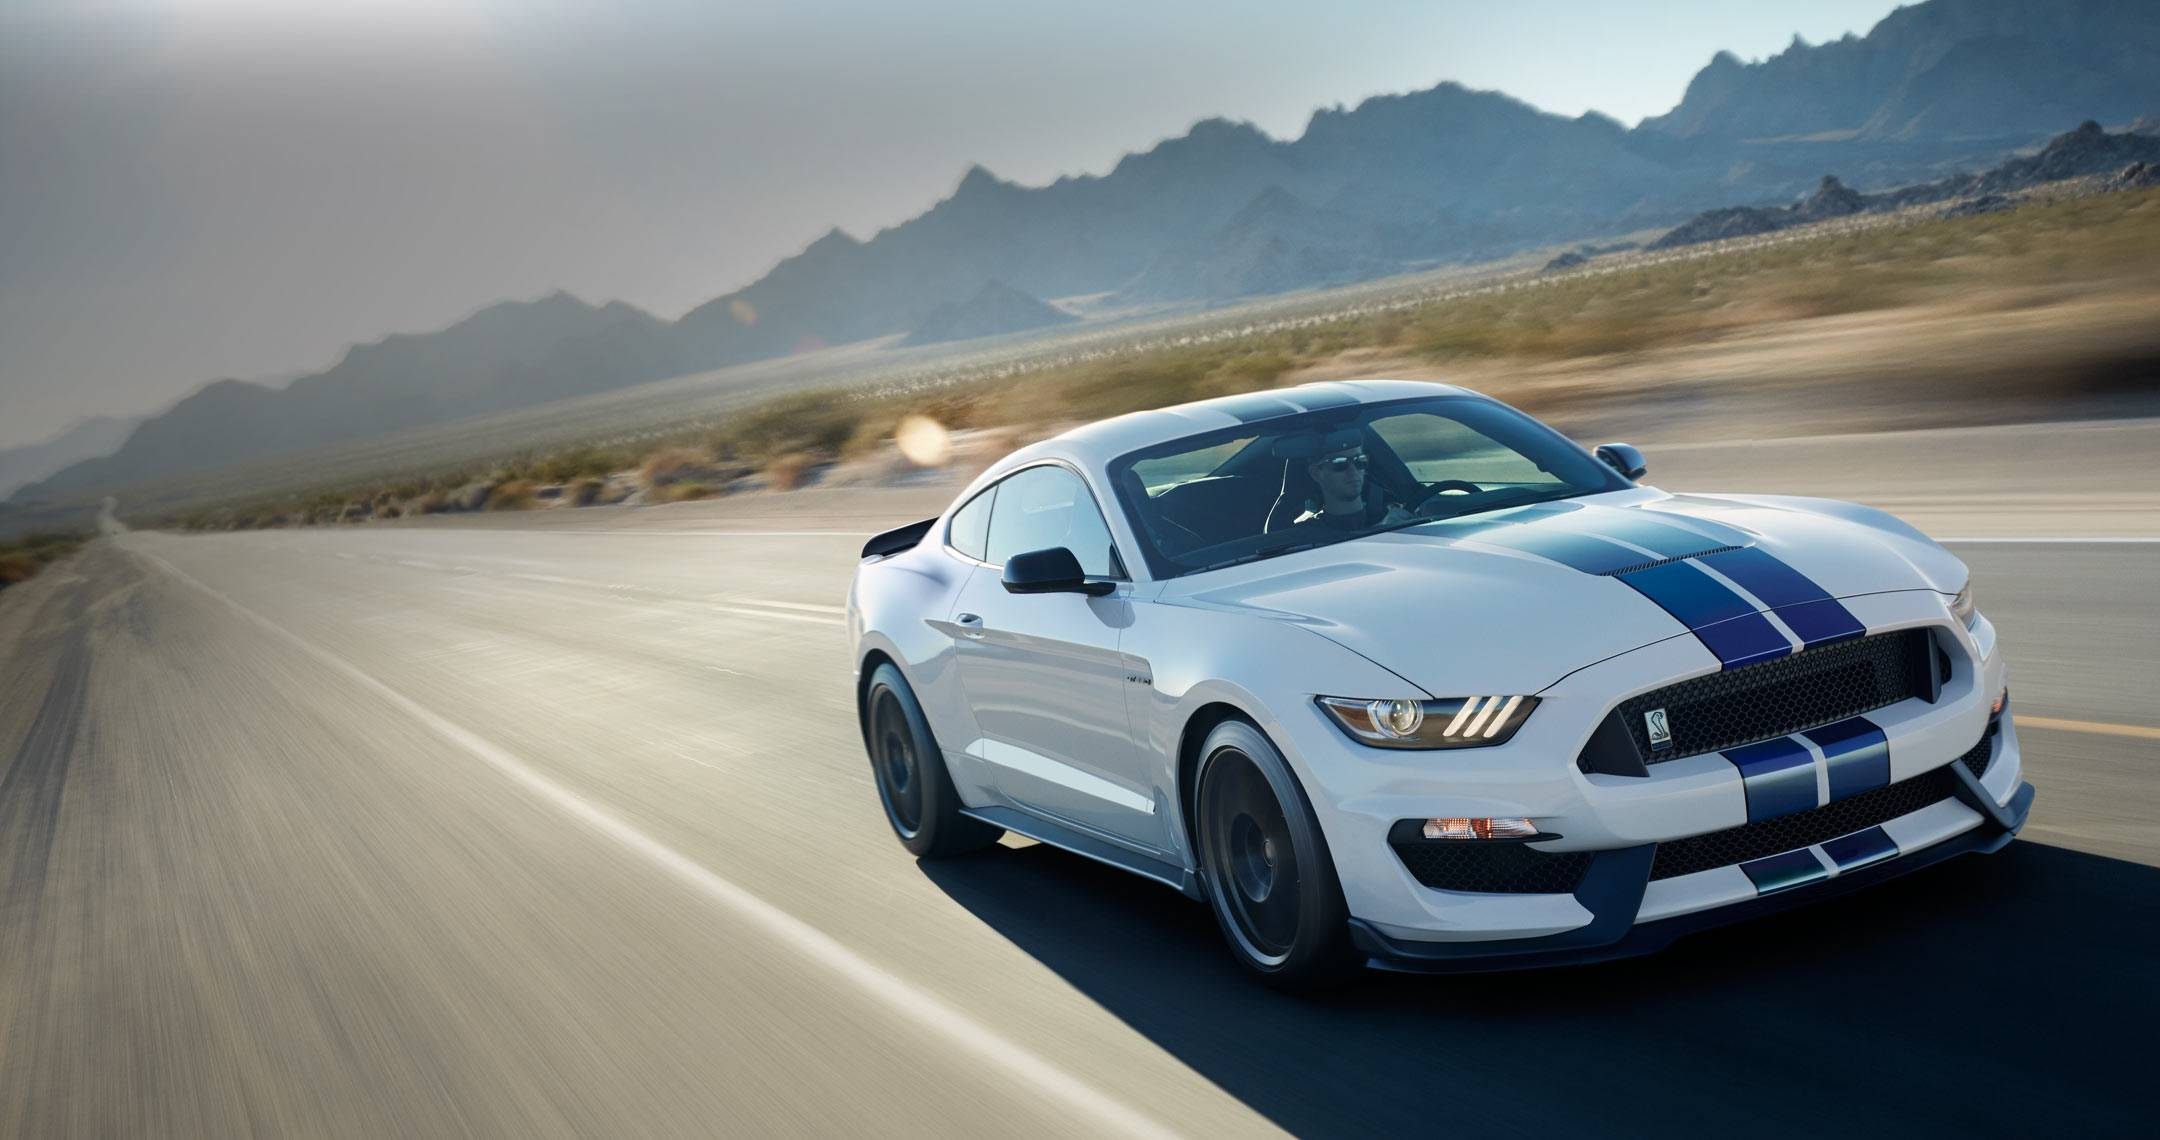 2160x1140 - Shelby Mustang GT 350 Wallpapers 20